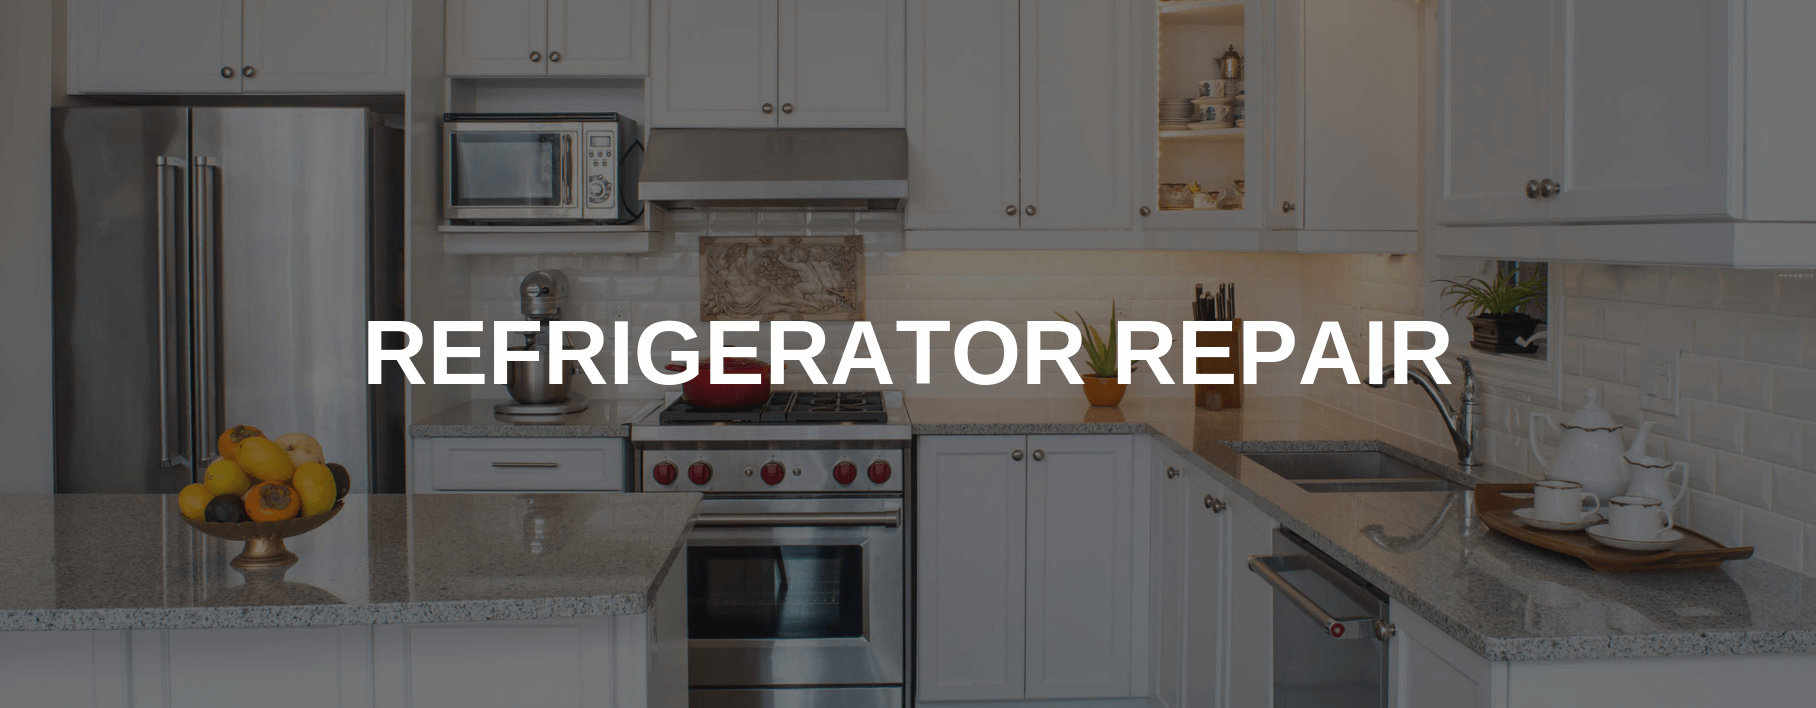 hayward refrigerator repair